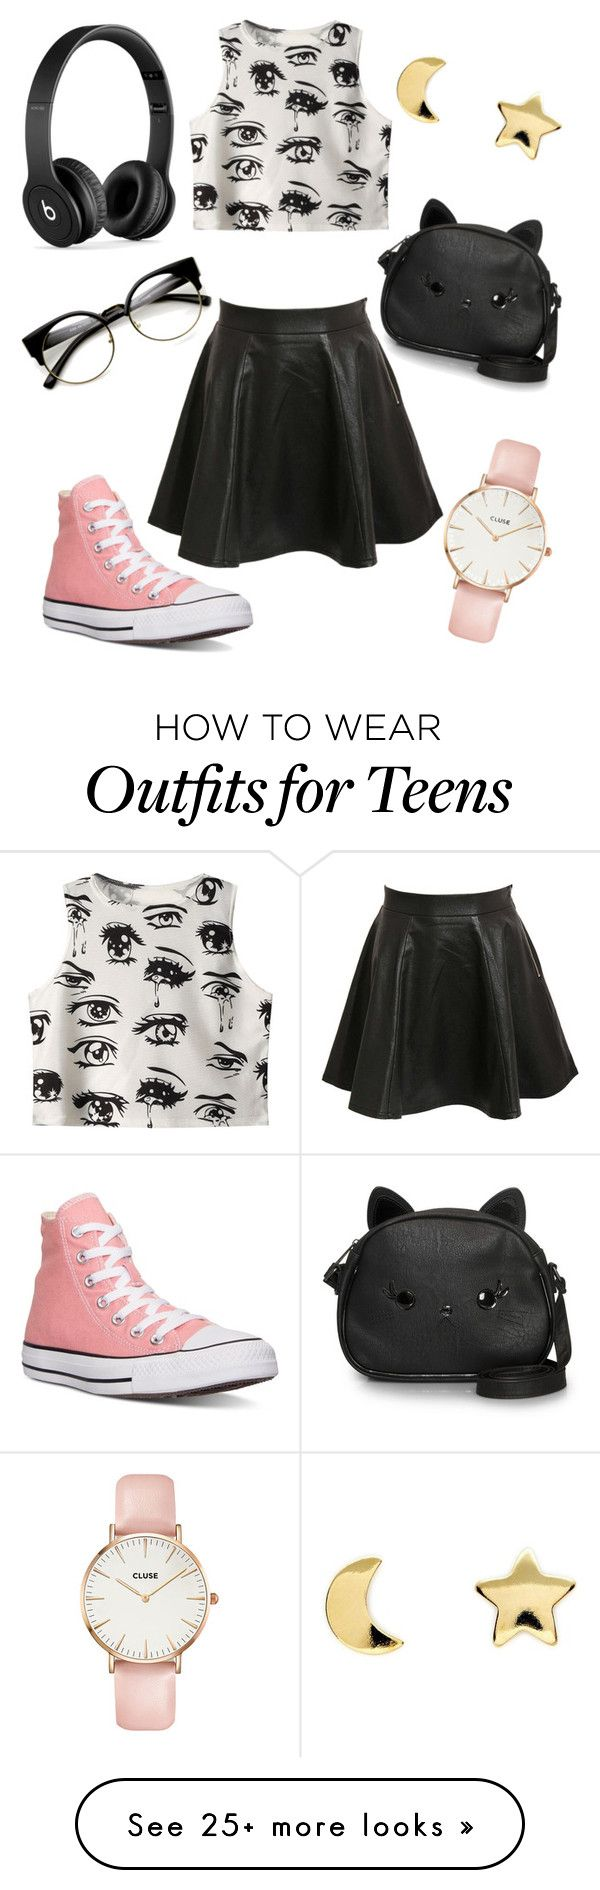 """White Teeth Teens"" by jaguarhull on Polyvore featuring Chicnova Fashion, Pilot, Converse, Loungefly, Beats by Dr. Dre, CLUSE and Erica Weiner"